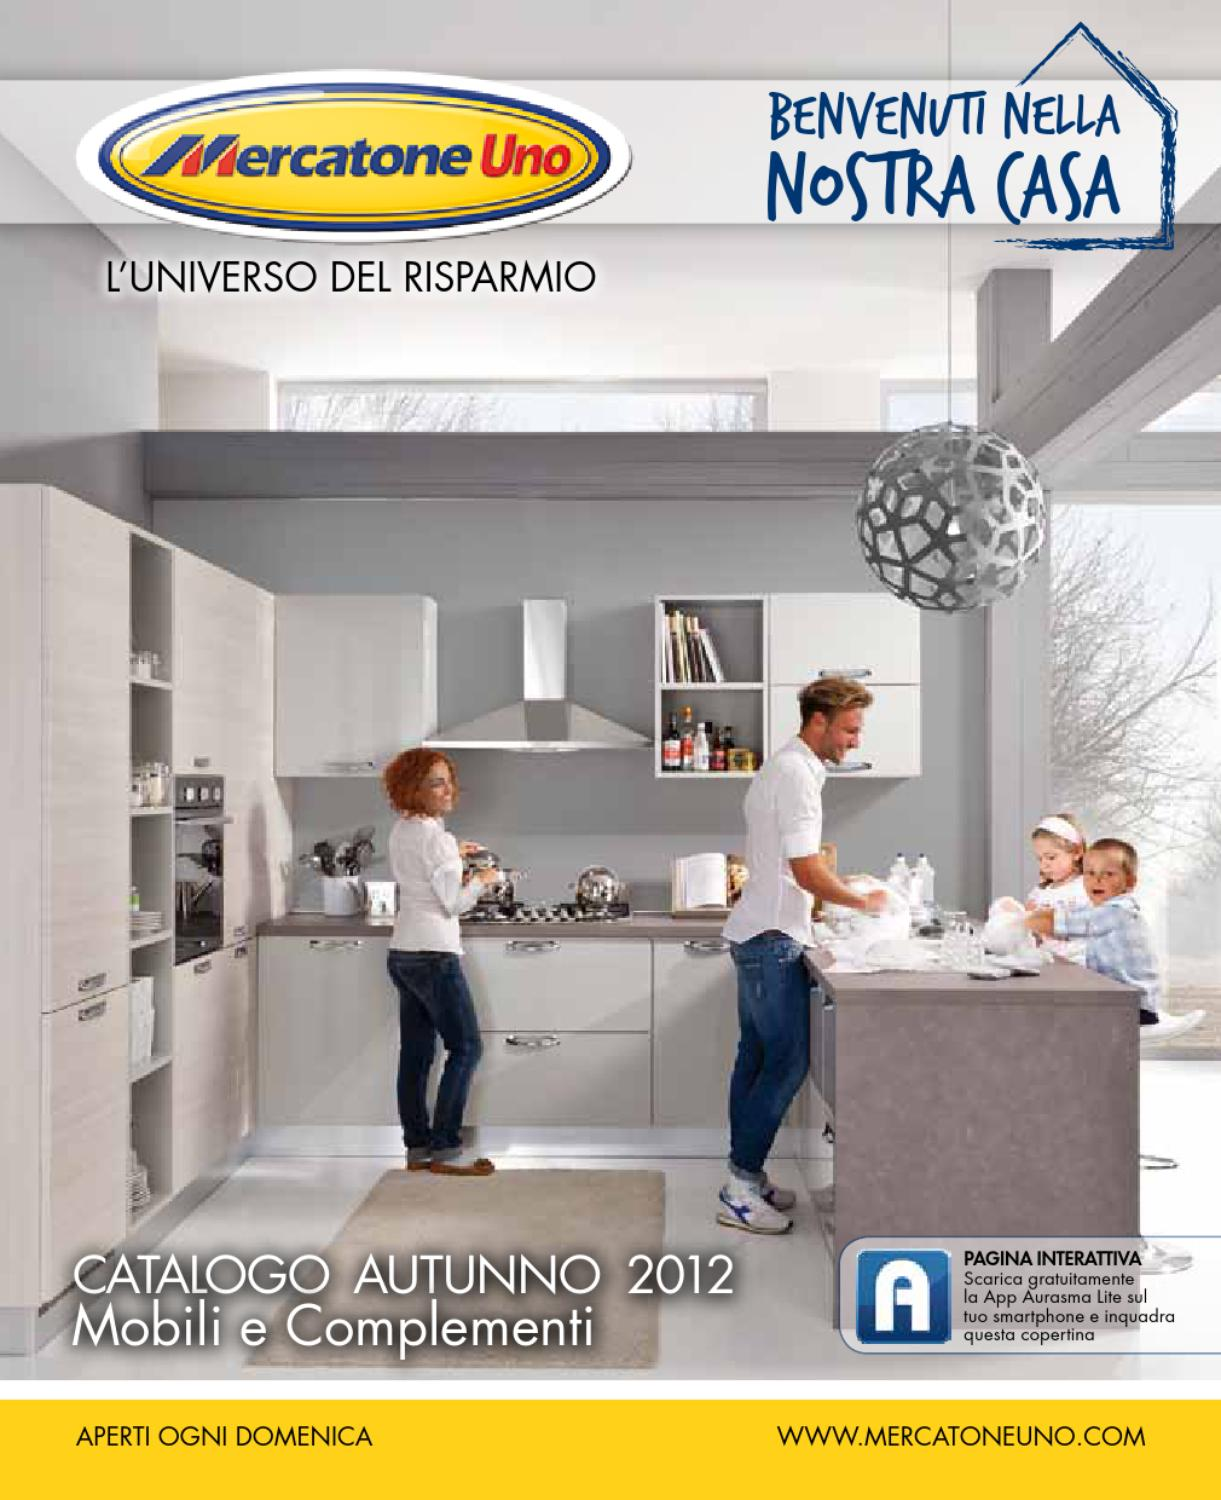 Mercatone uno catalogo autunno 2012 by issuu - Mercatone uno cucine catalogo ...